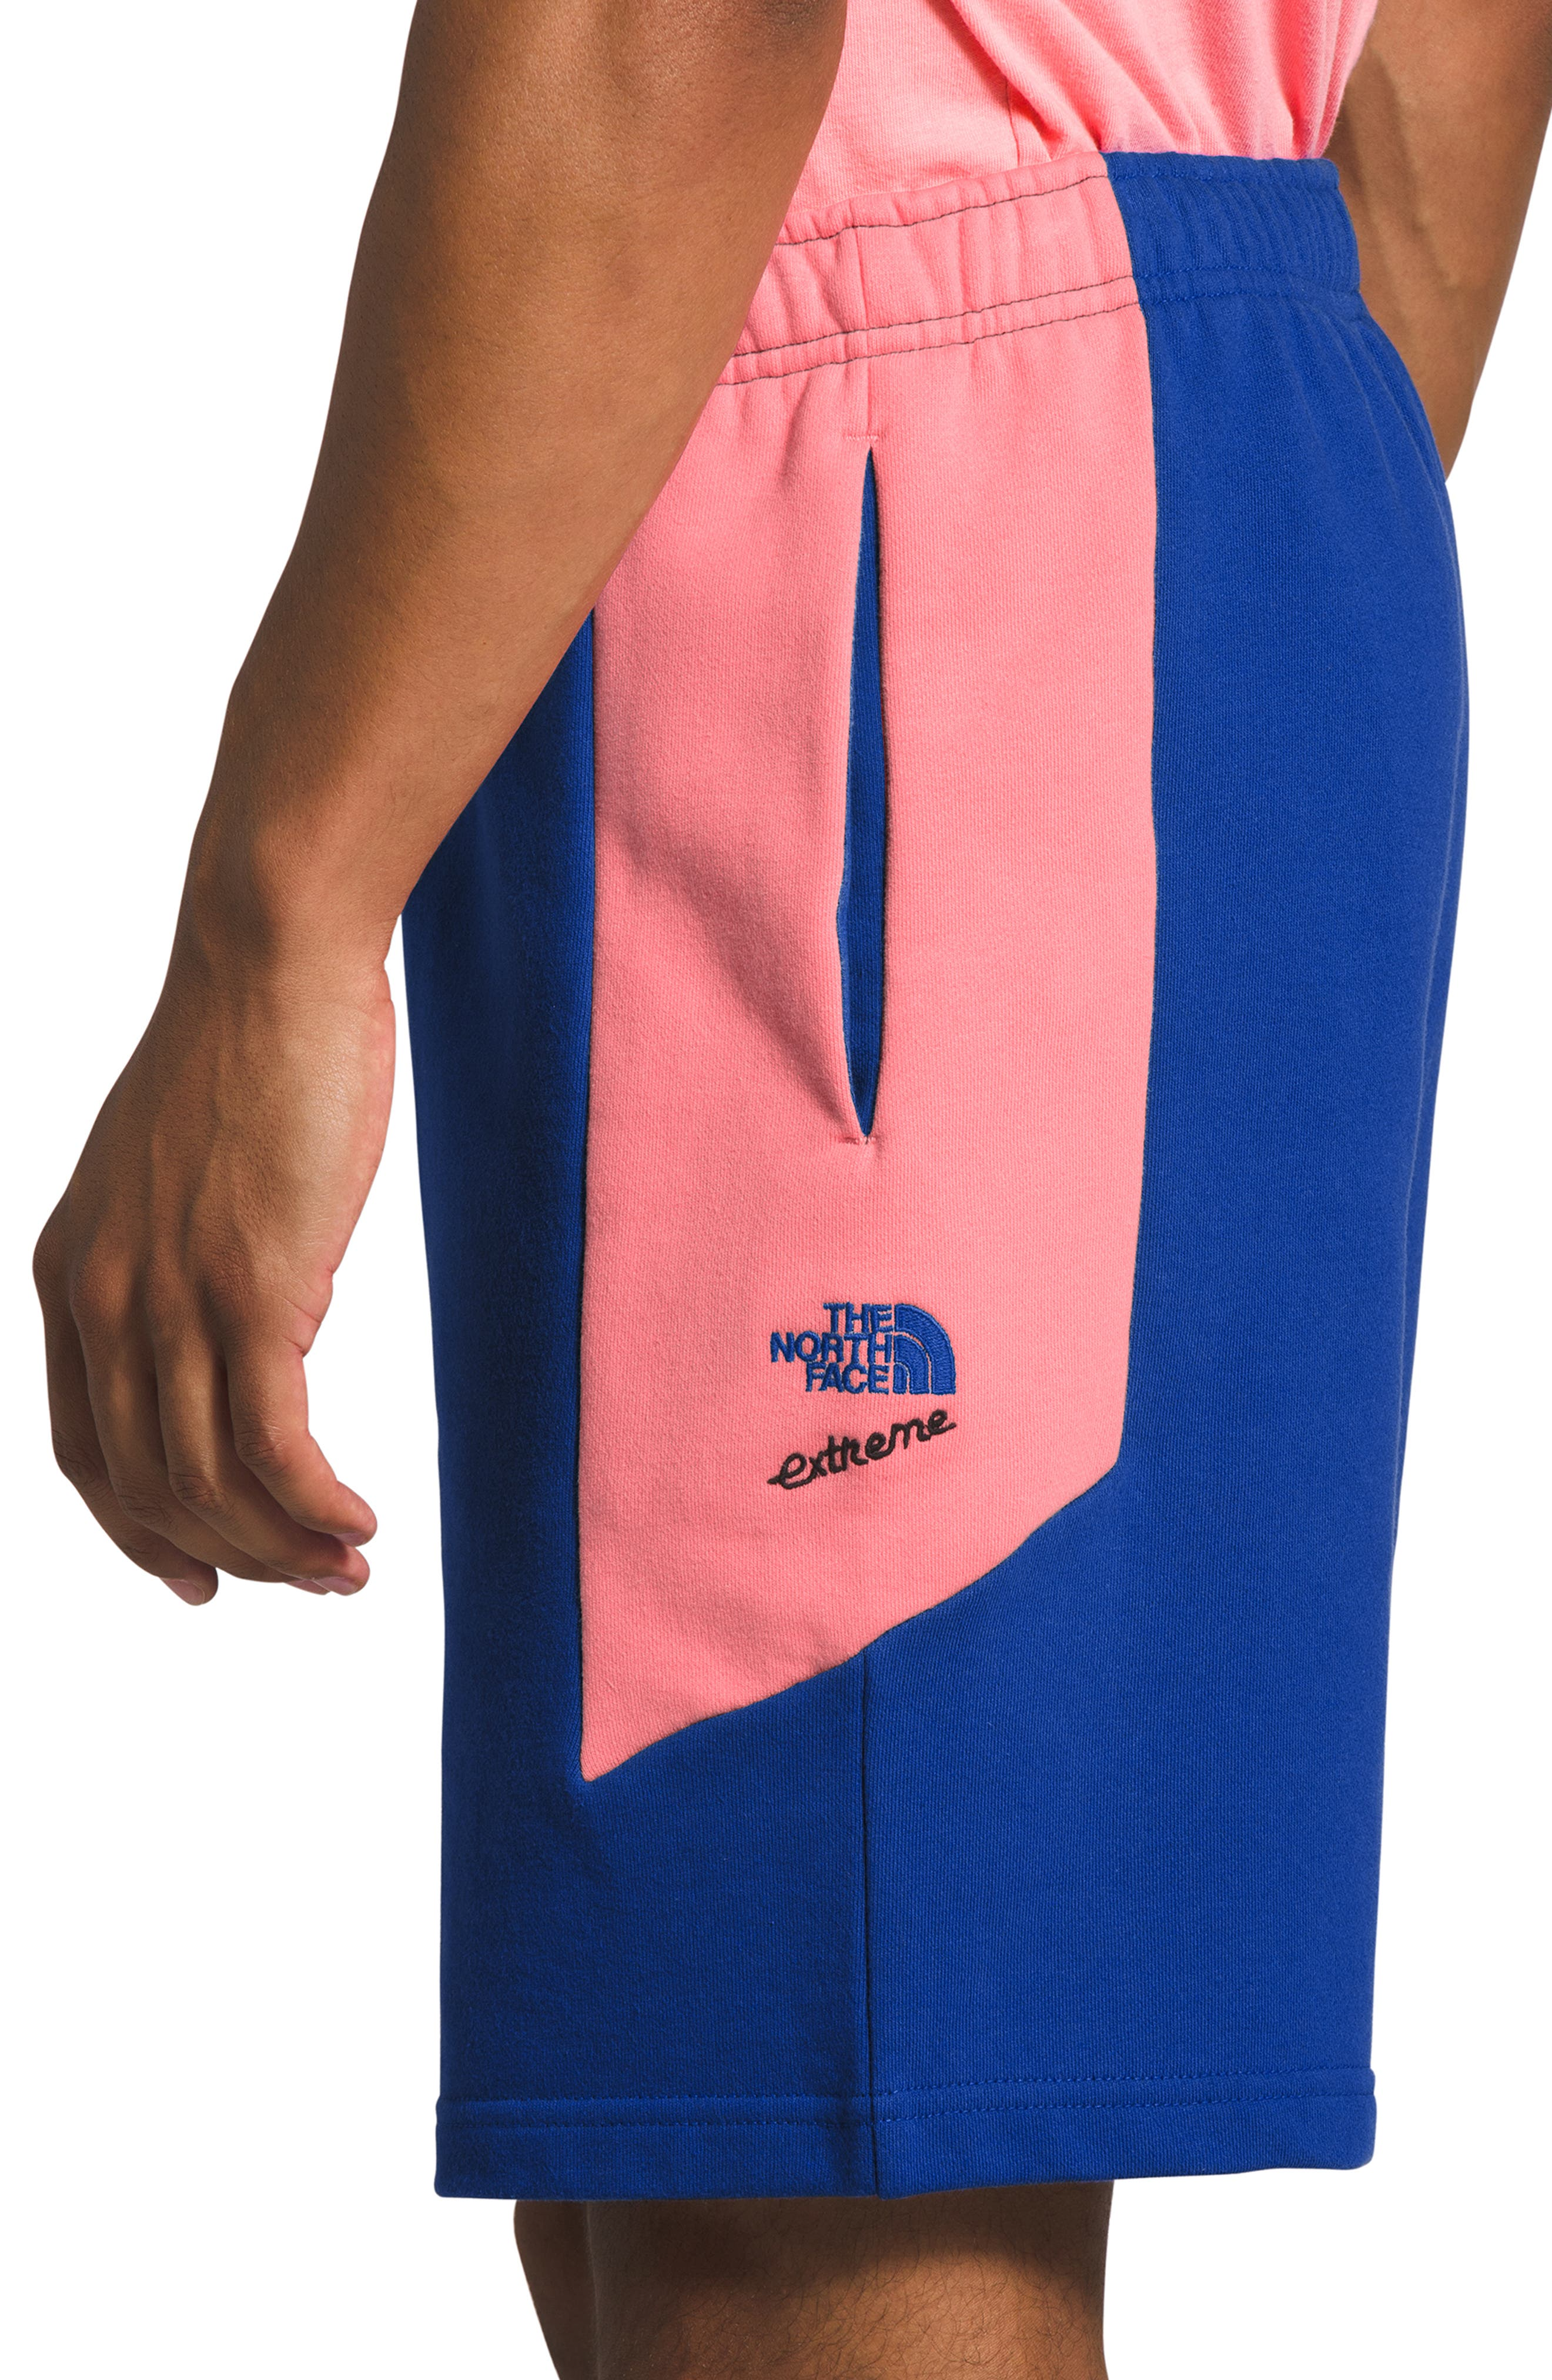 The North Face Xtreme Colorblock Shorts